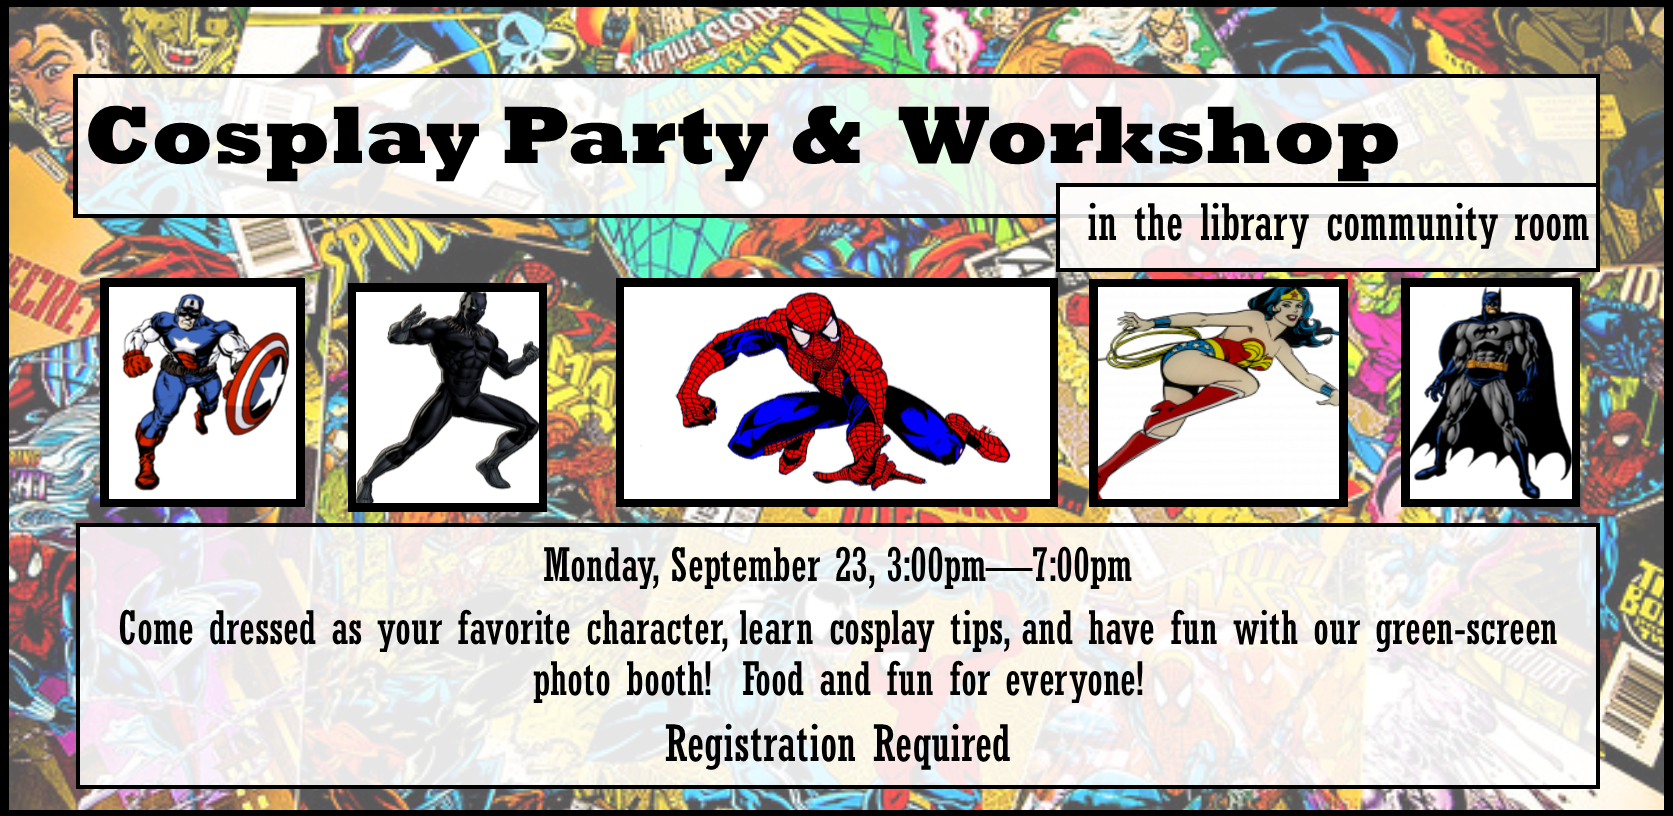 Cosplay Party & Workshop